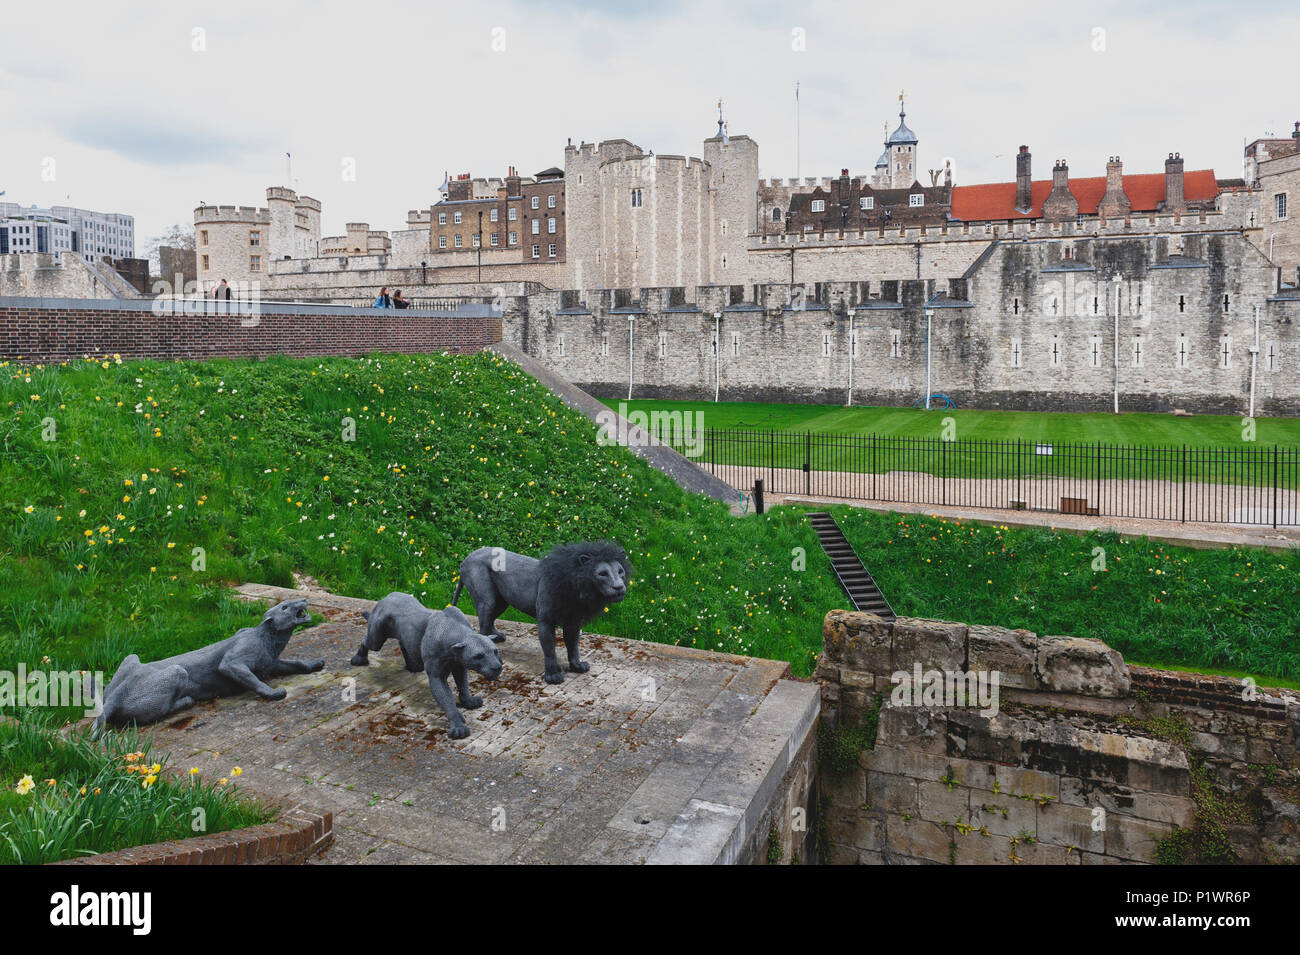 Wire animal sculptures of three Barbary lions by Kendra Haste installed at the Tower of London, historic castle by River Thames in London, England, UK - Stock Image